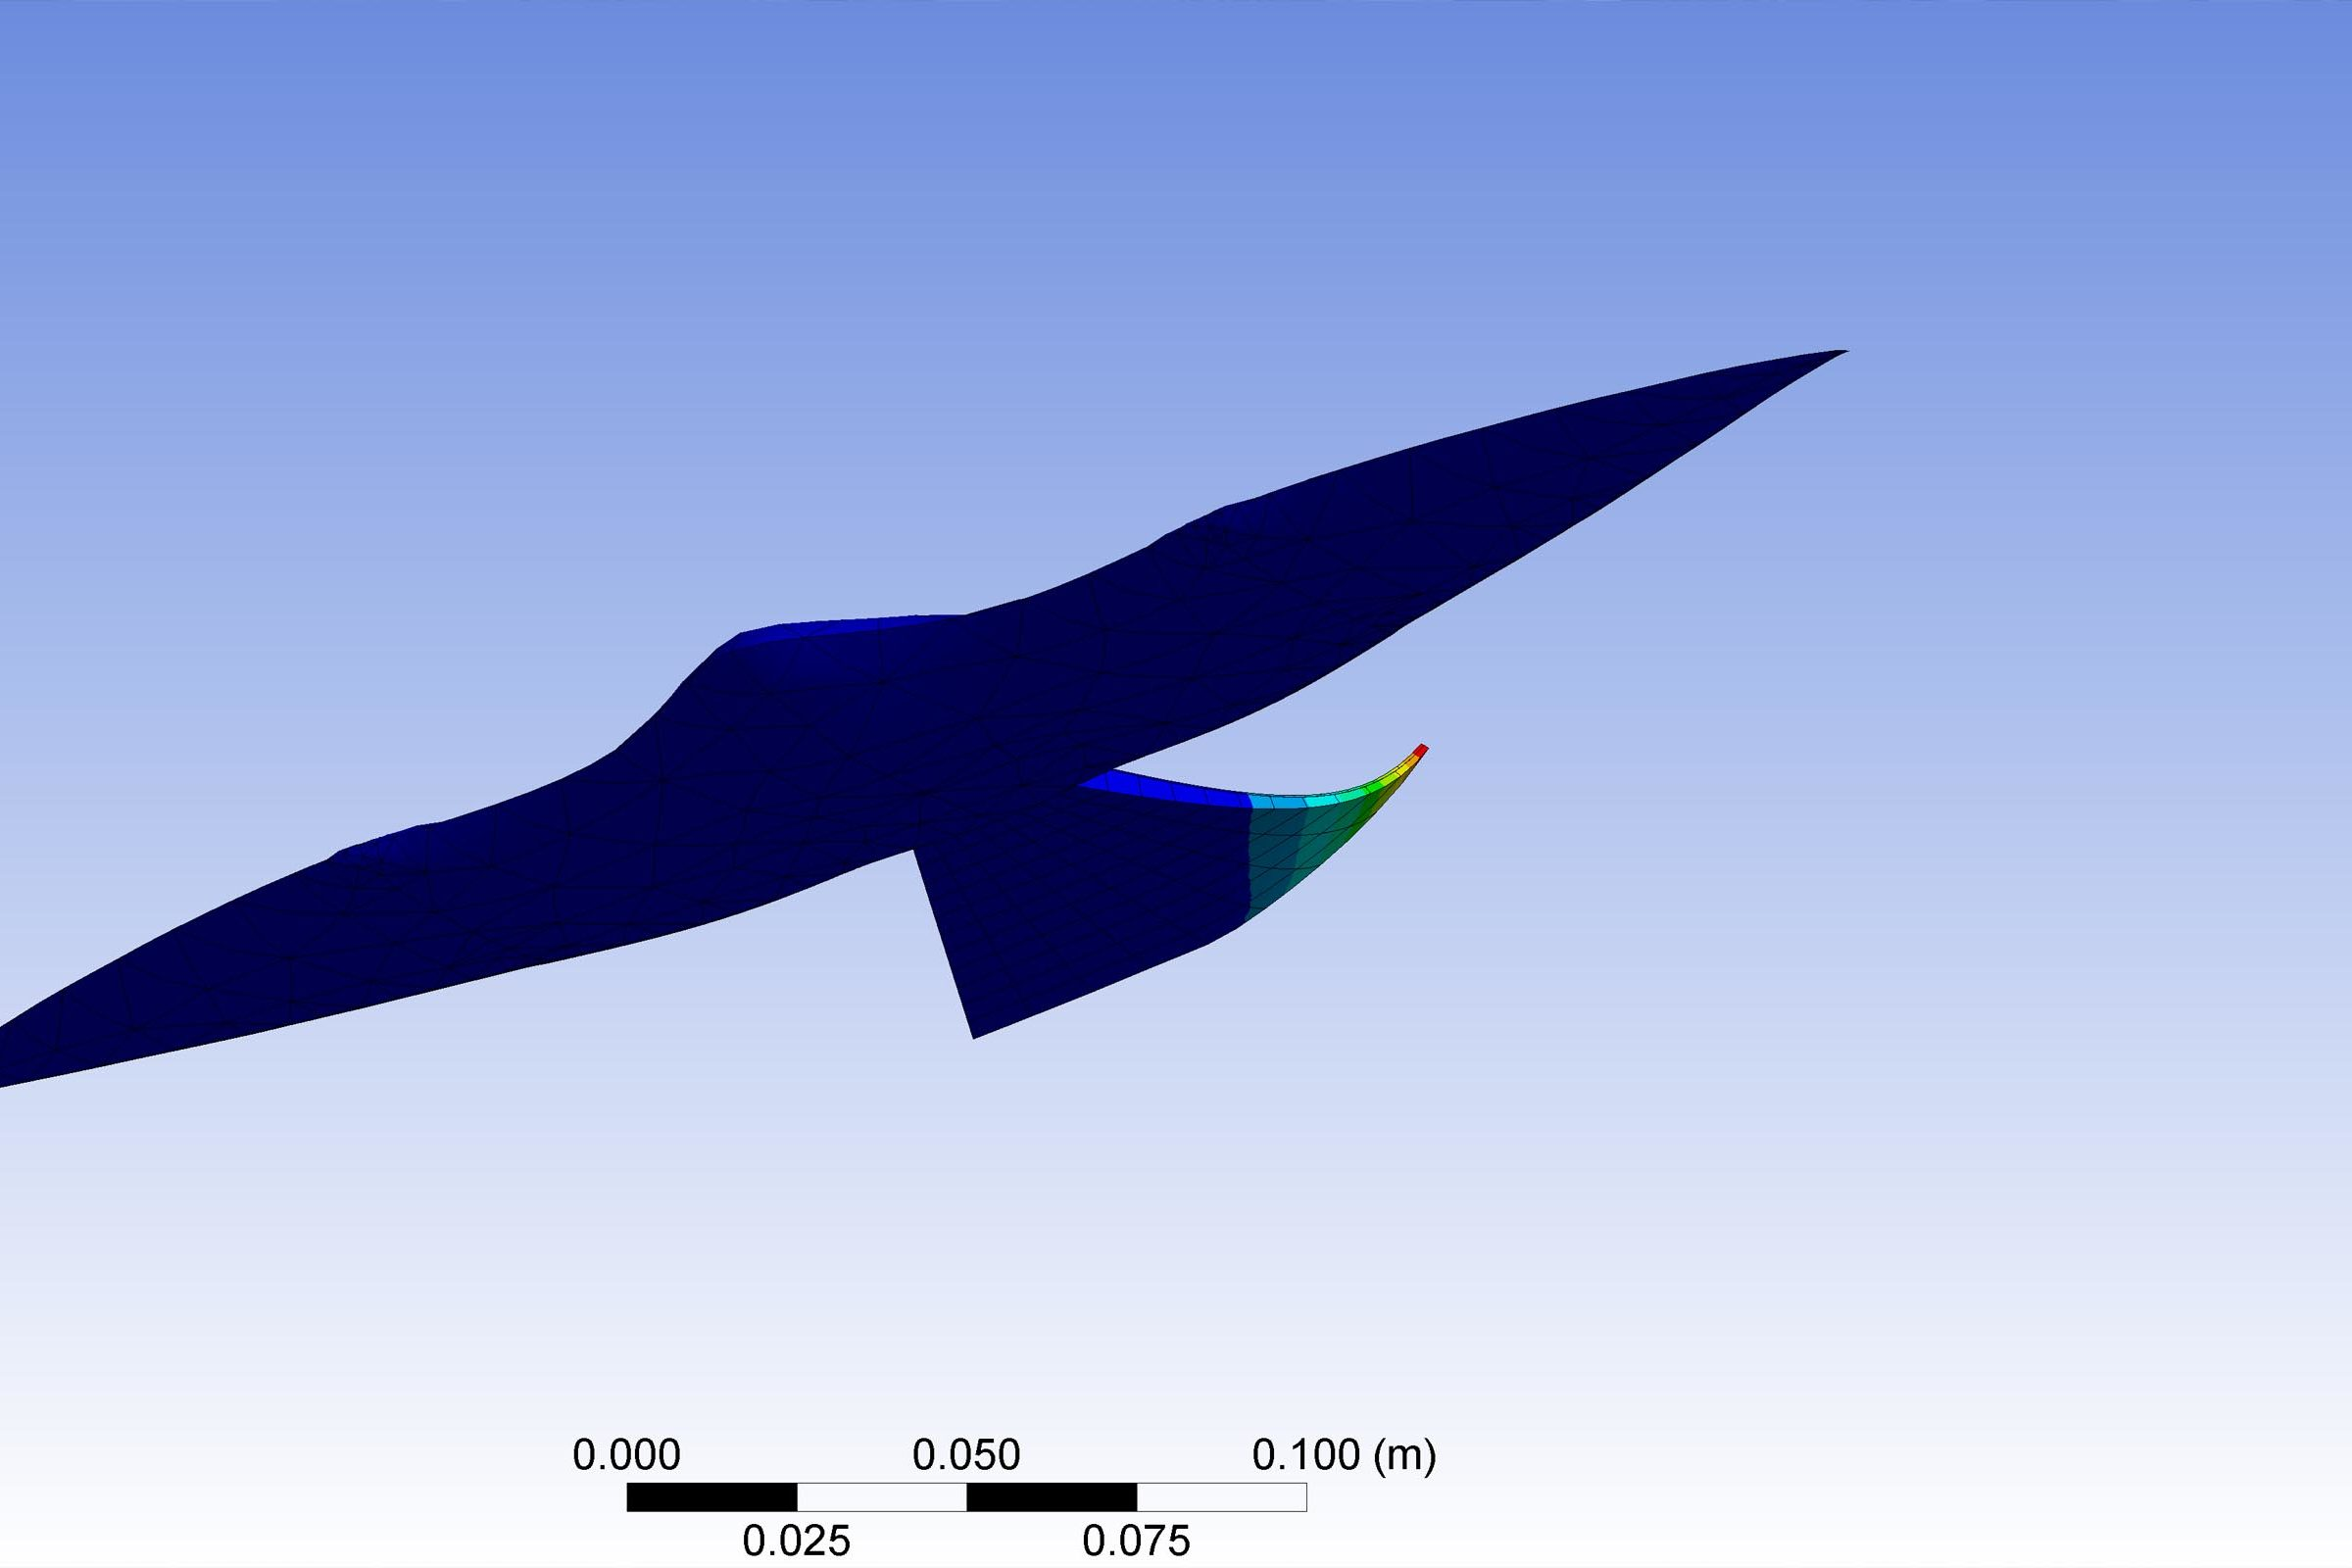 A computer simulation of a model bird